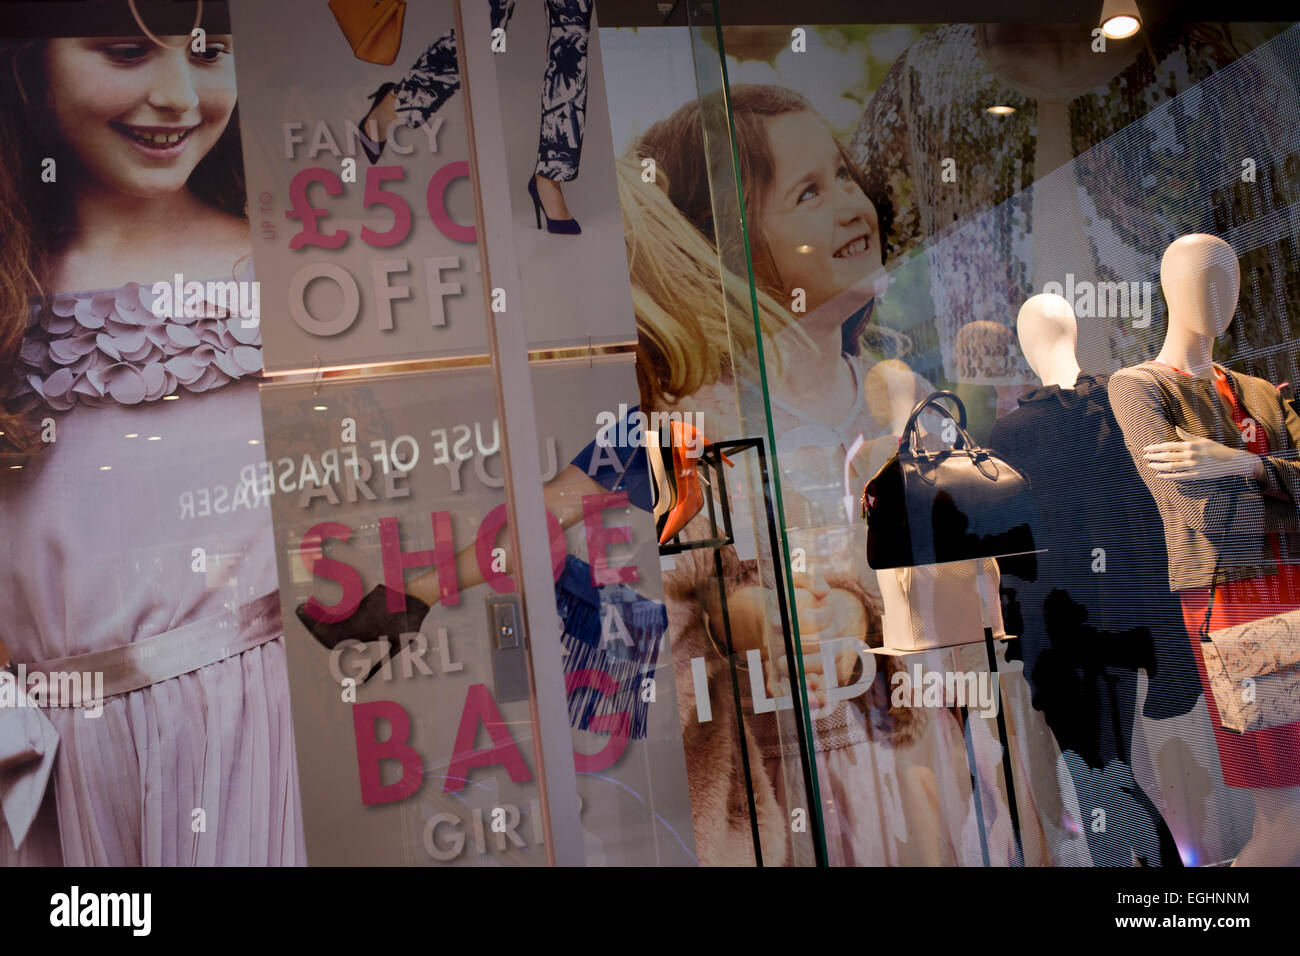 Young models in the window of a nearby fashion hoarding and Debenhams mannequins in central London. - Stock Image